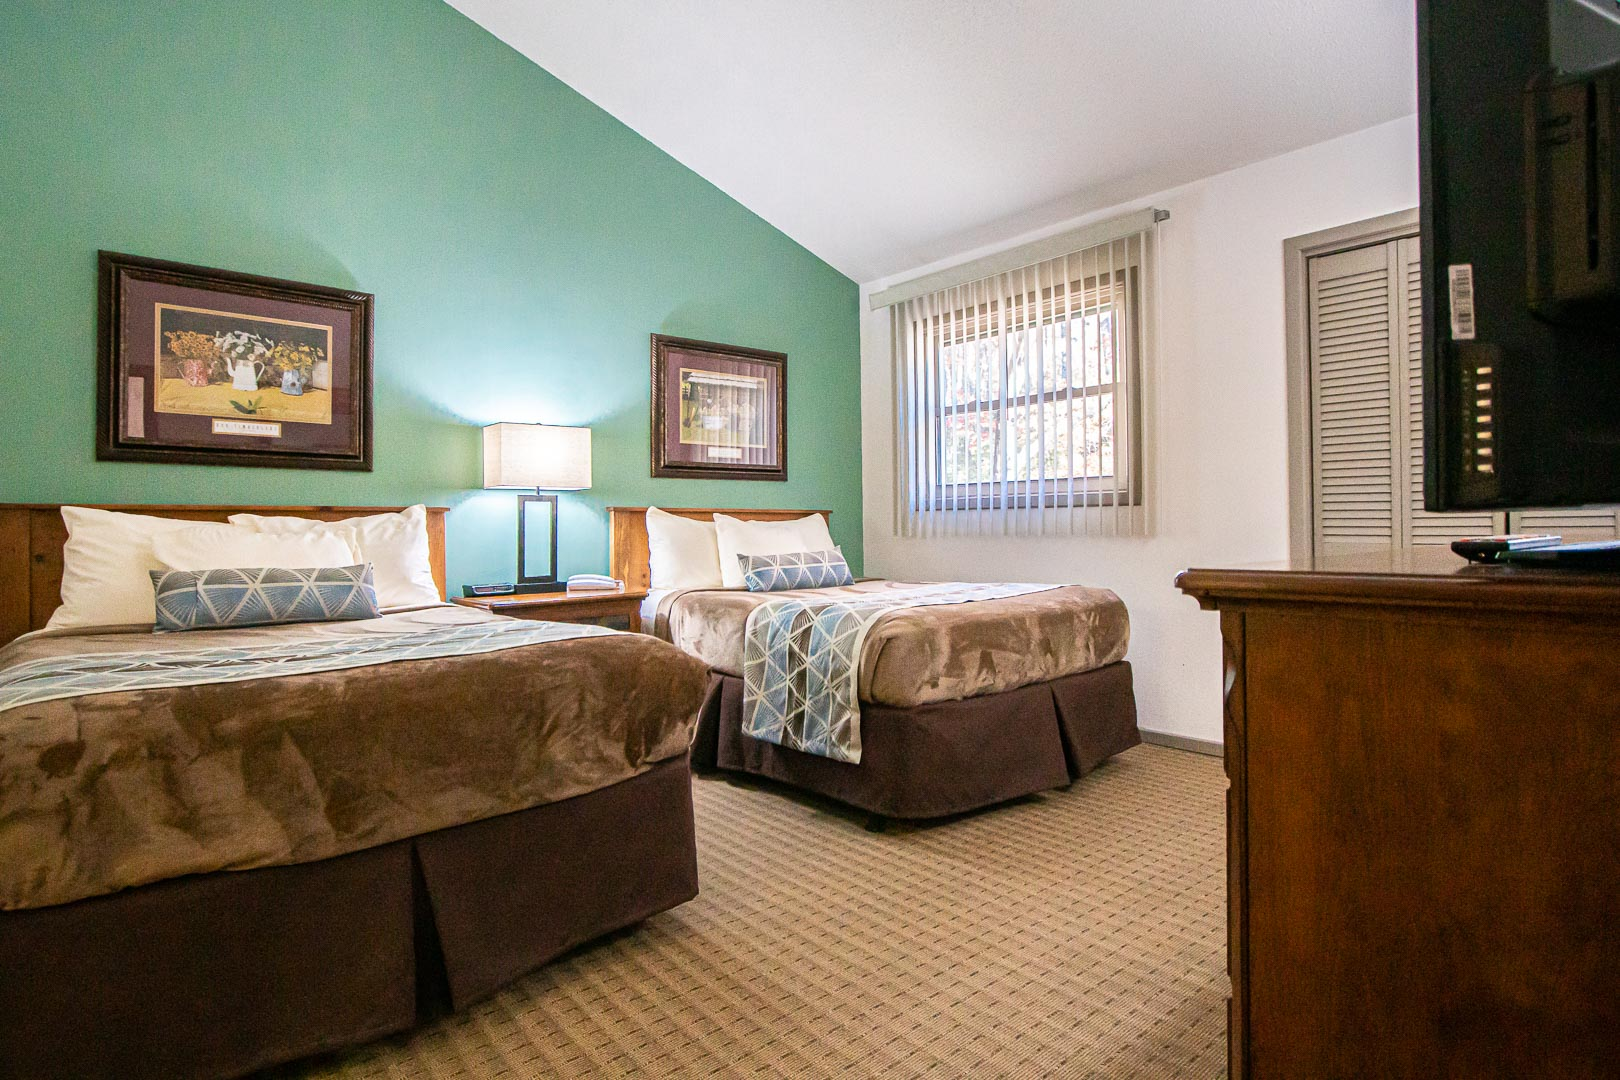 A spacious bedroom with double beds at VRI's Fox Run Resort in North Carolina.